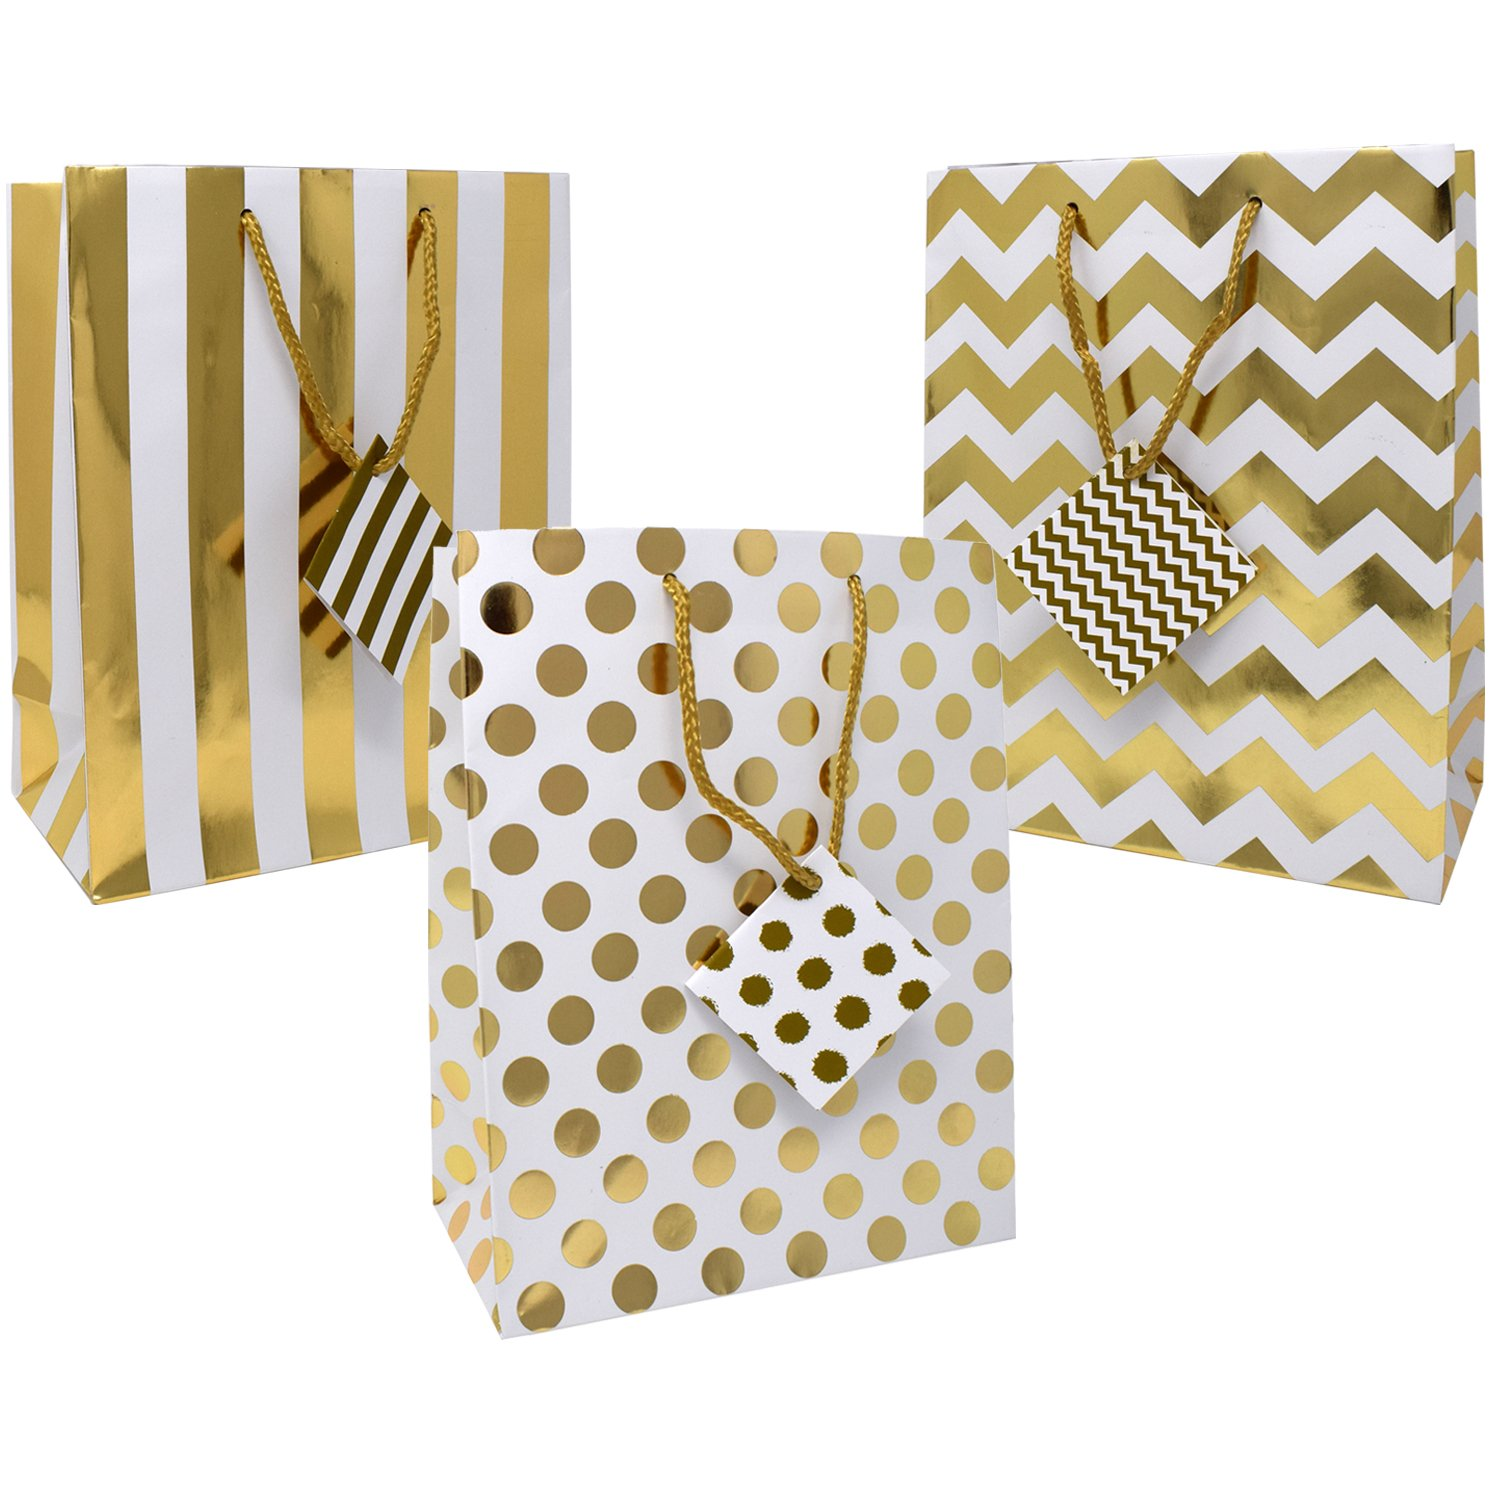 42f583f3689aa 12 Large Metallic Gold and White Gift Bags for Women Baby Shower Birthday  Wedding Graduation for Men Kids Girls Adults Boys